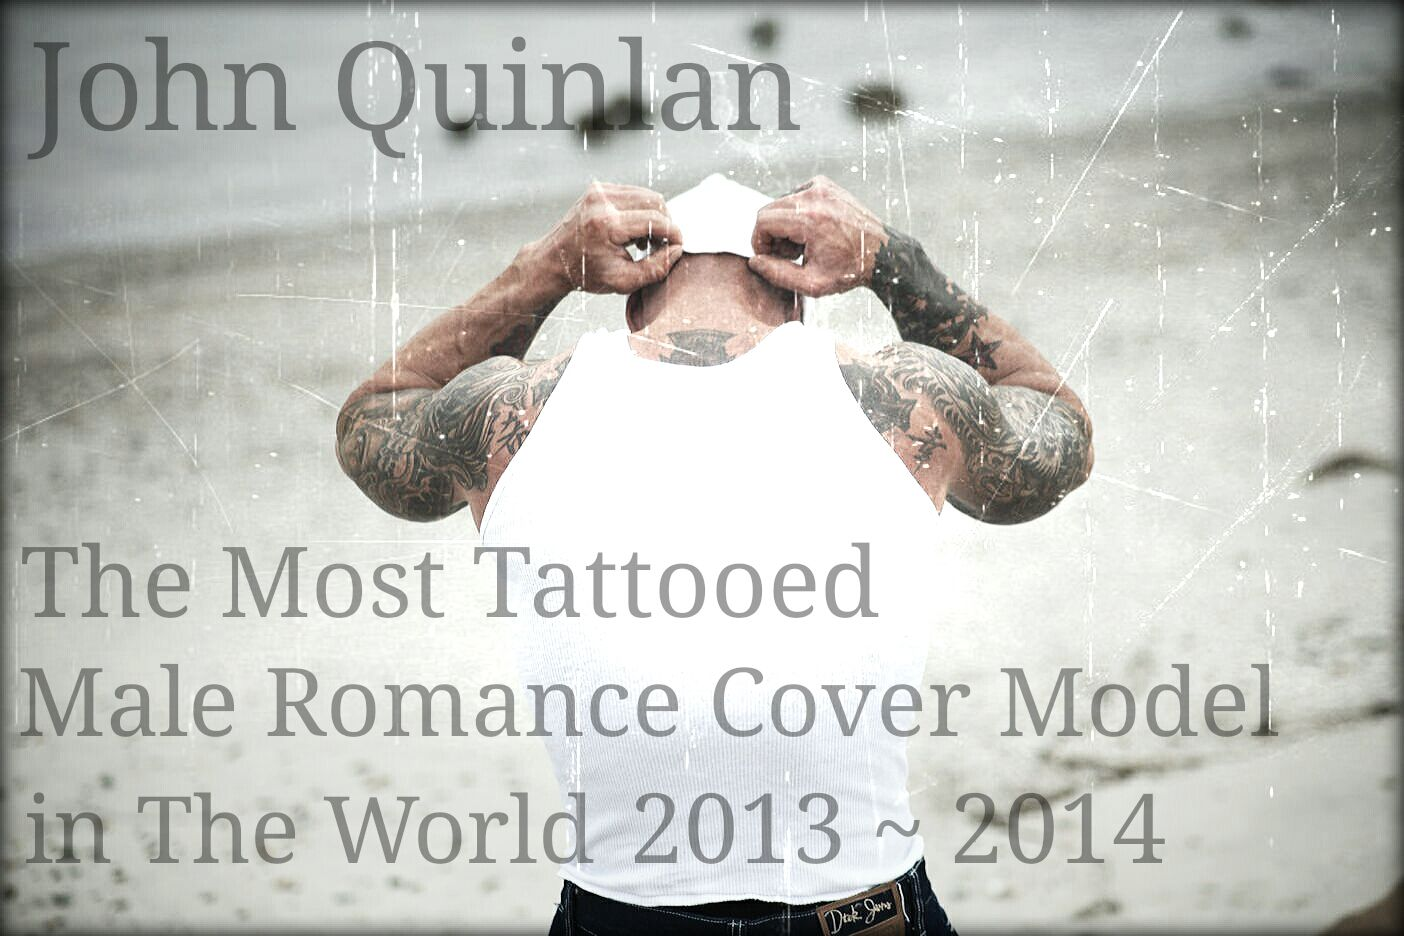 Romance Cover Tattoo Physique Model & Actor John Joseph Quinlan Poster #JohnQuinlan